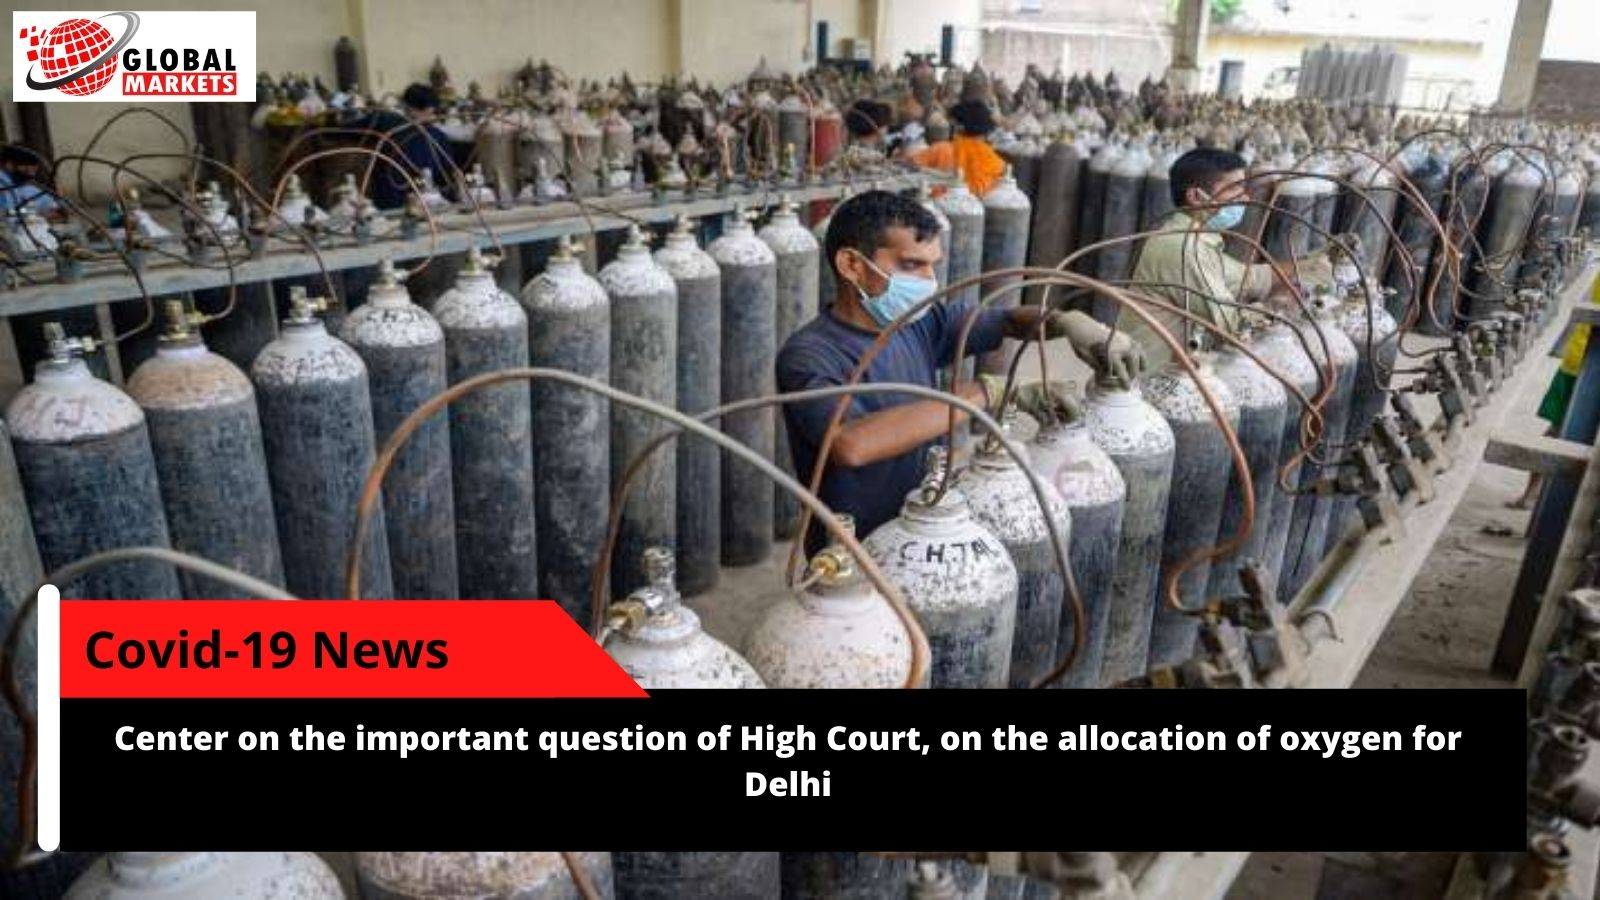 Arvind Kejriwal government's repeated appeals were not approved on the allocation of oxygen